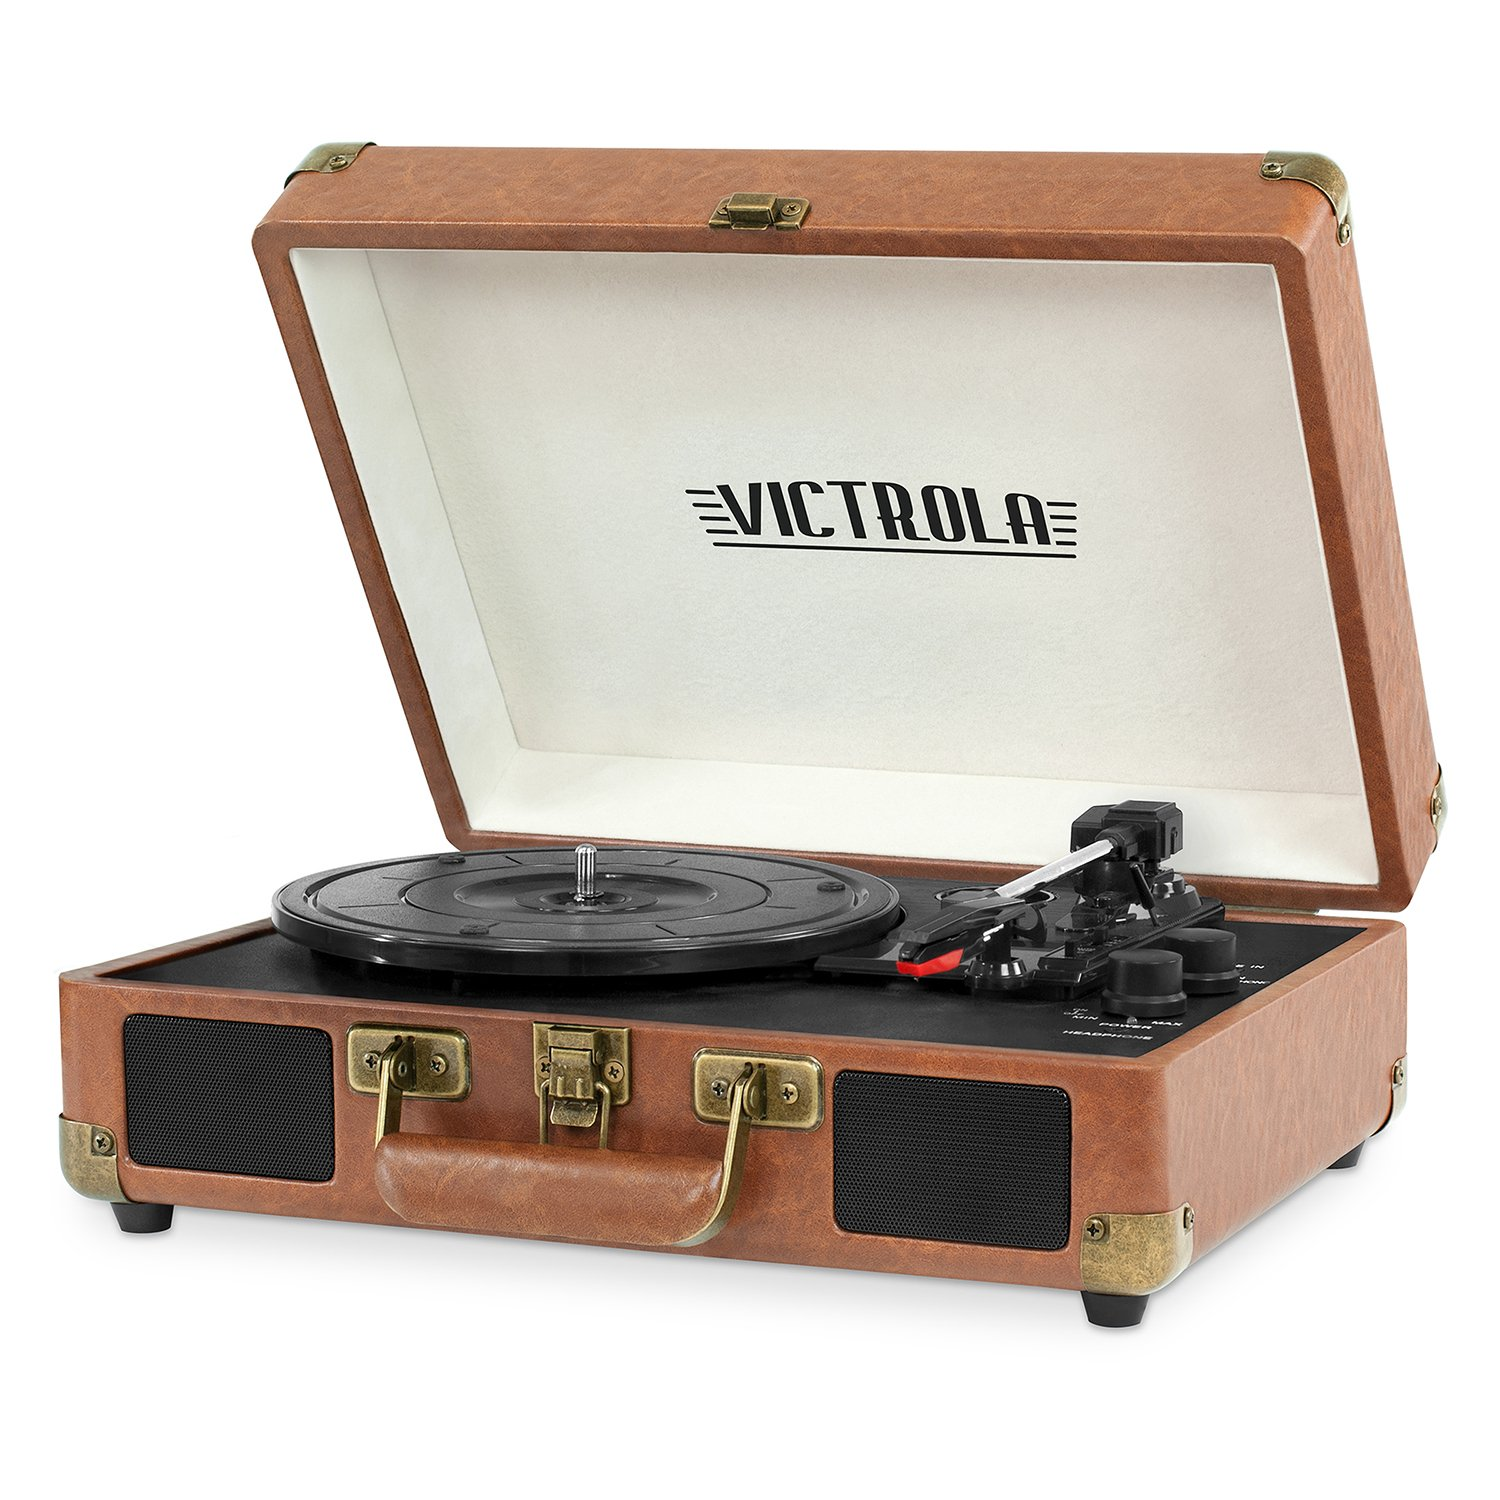 Victrola Bluetooth Suitcase Record Player 3-Speed Turntable by Victrola (Image #3)